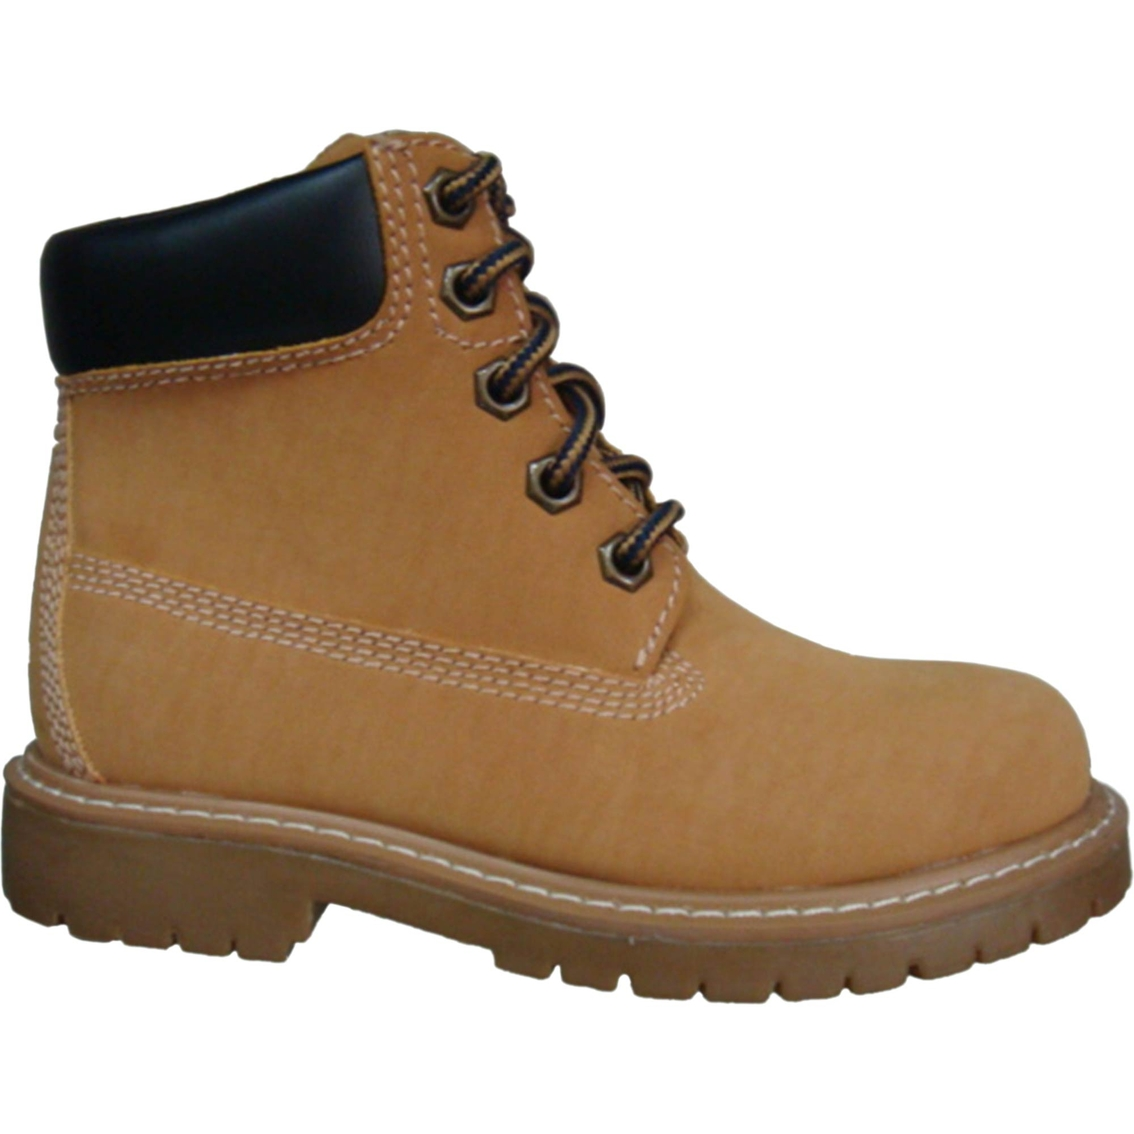 Freeman Boys Work Boots | Boots | Shoes | Shop The Exchange